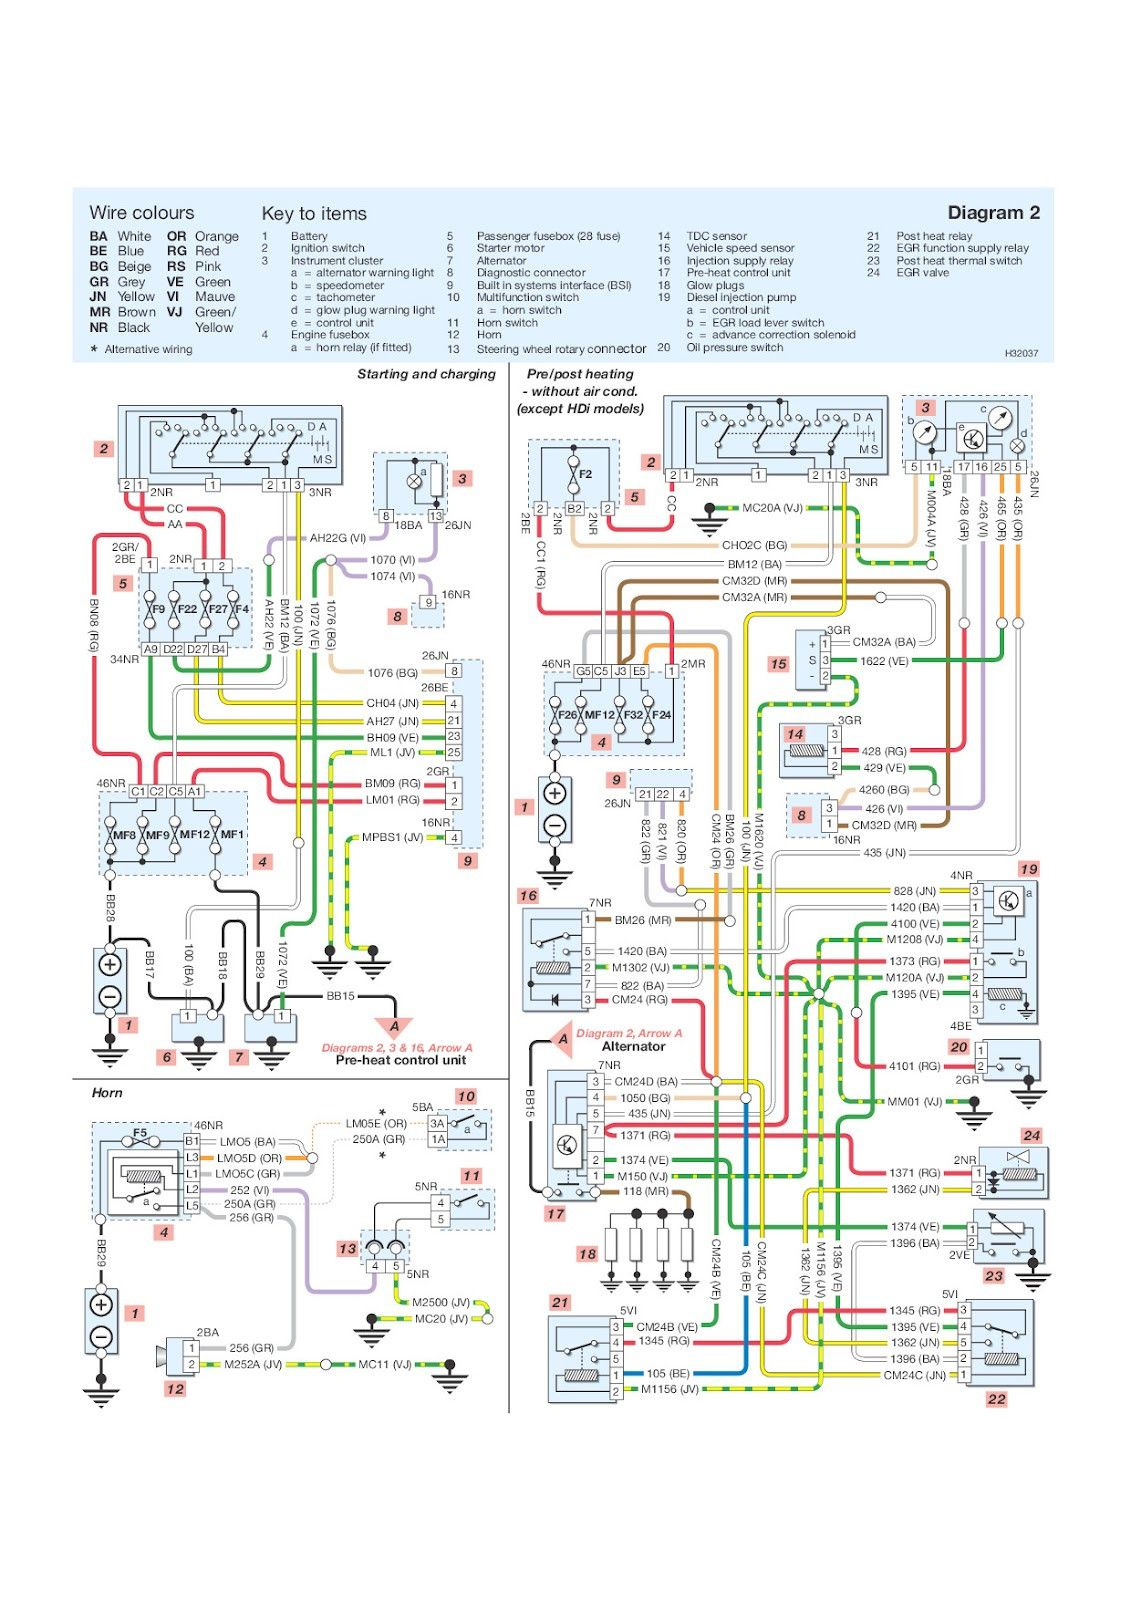 your wiring diagrams source peugeot 206 starting charging horn rh pinterest com Light Switch Wiring Diagram HVAC Wiring Diagrams